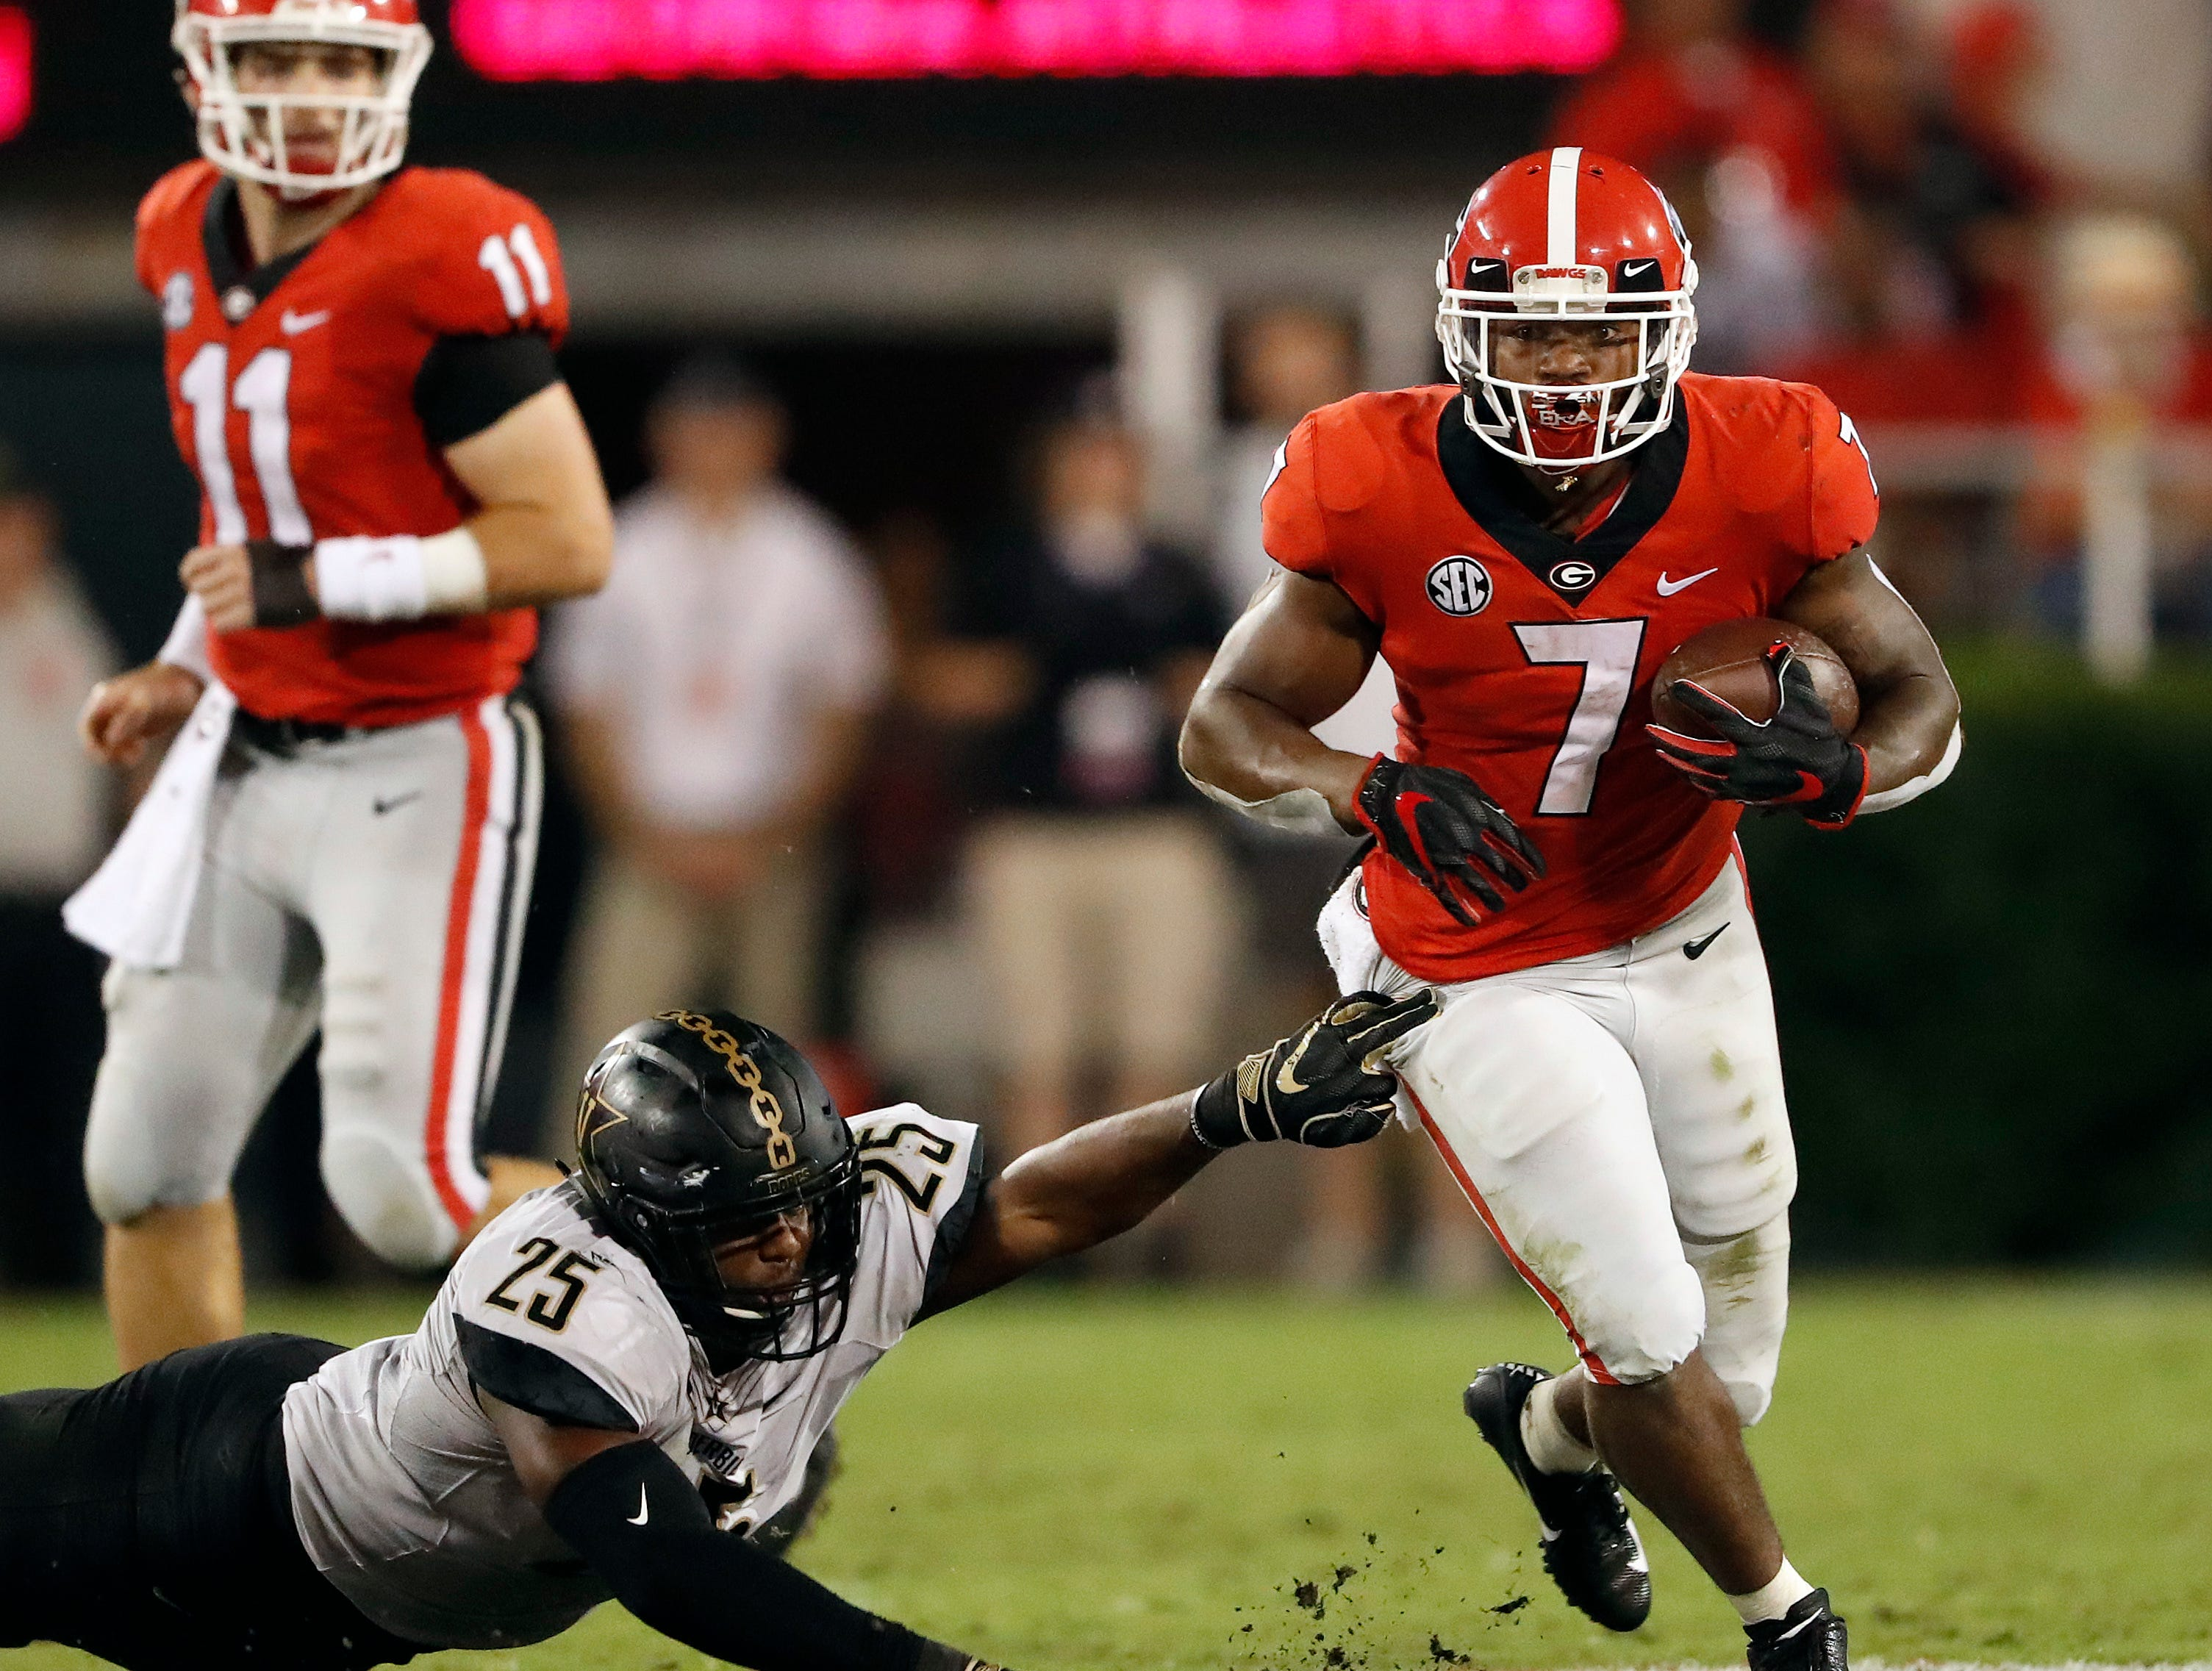 Georgia running back D'Andre Swift (7) gets past Vanderbilt linebacker Josh Smith (25) during the second half of an NCAA college football game Saturday, Oct. 6, 2018, in Atlanta. (AP Photo/John Bazemore)